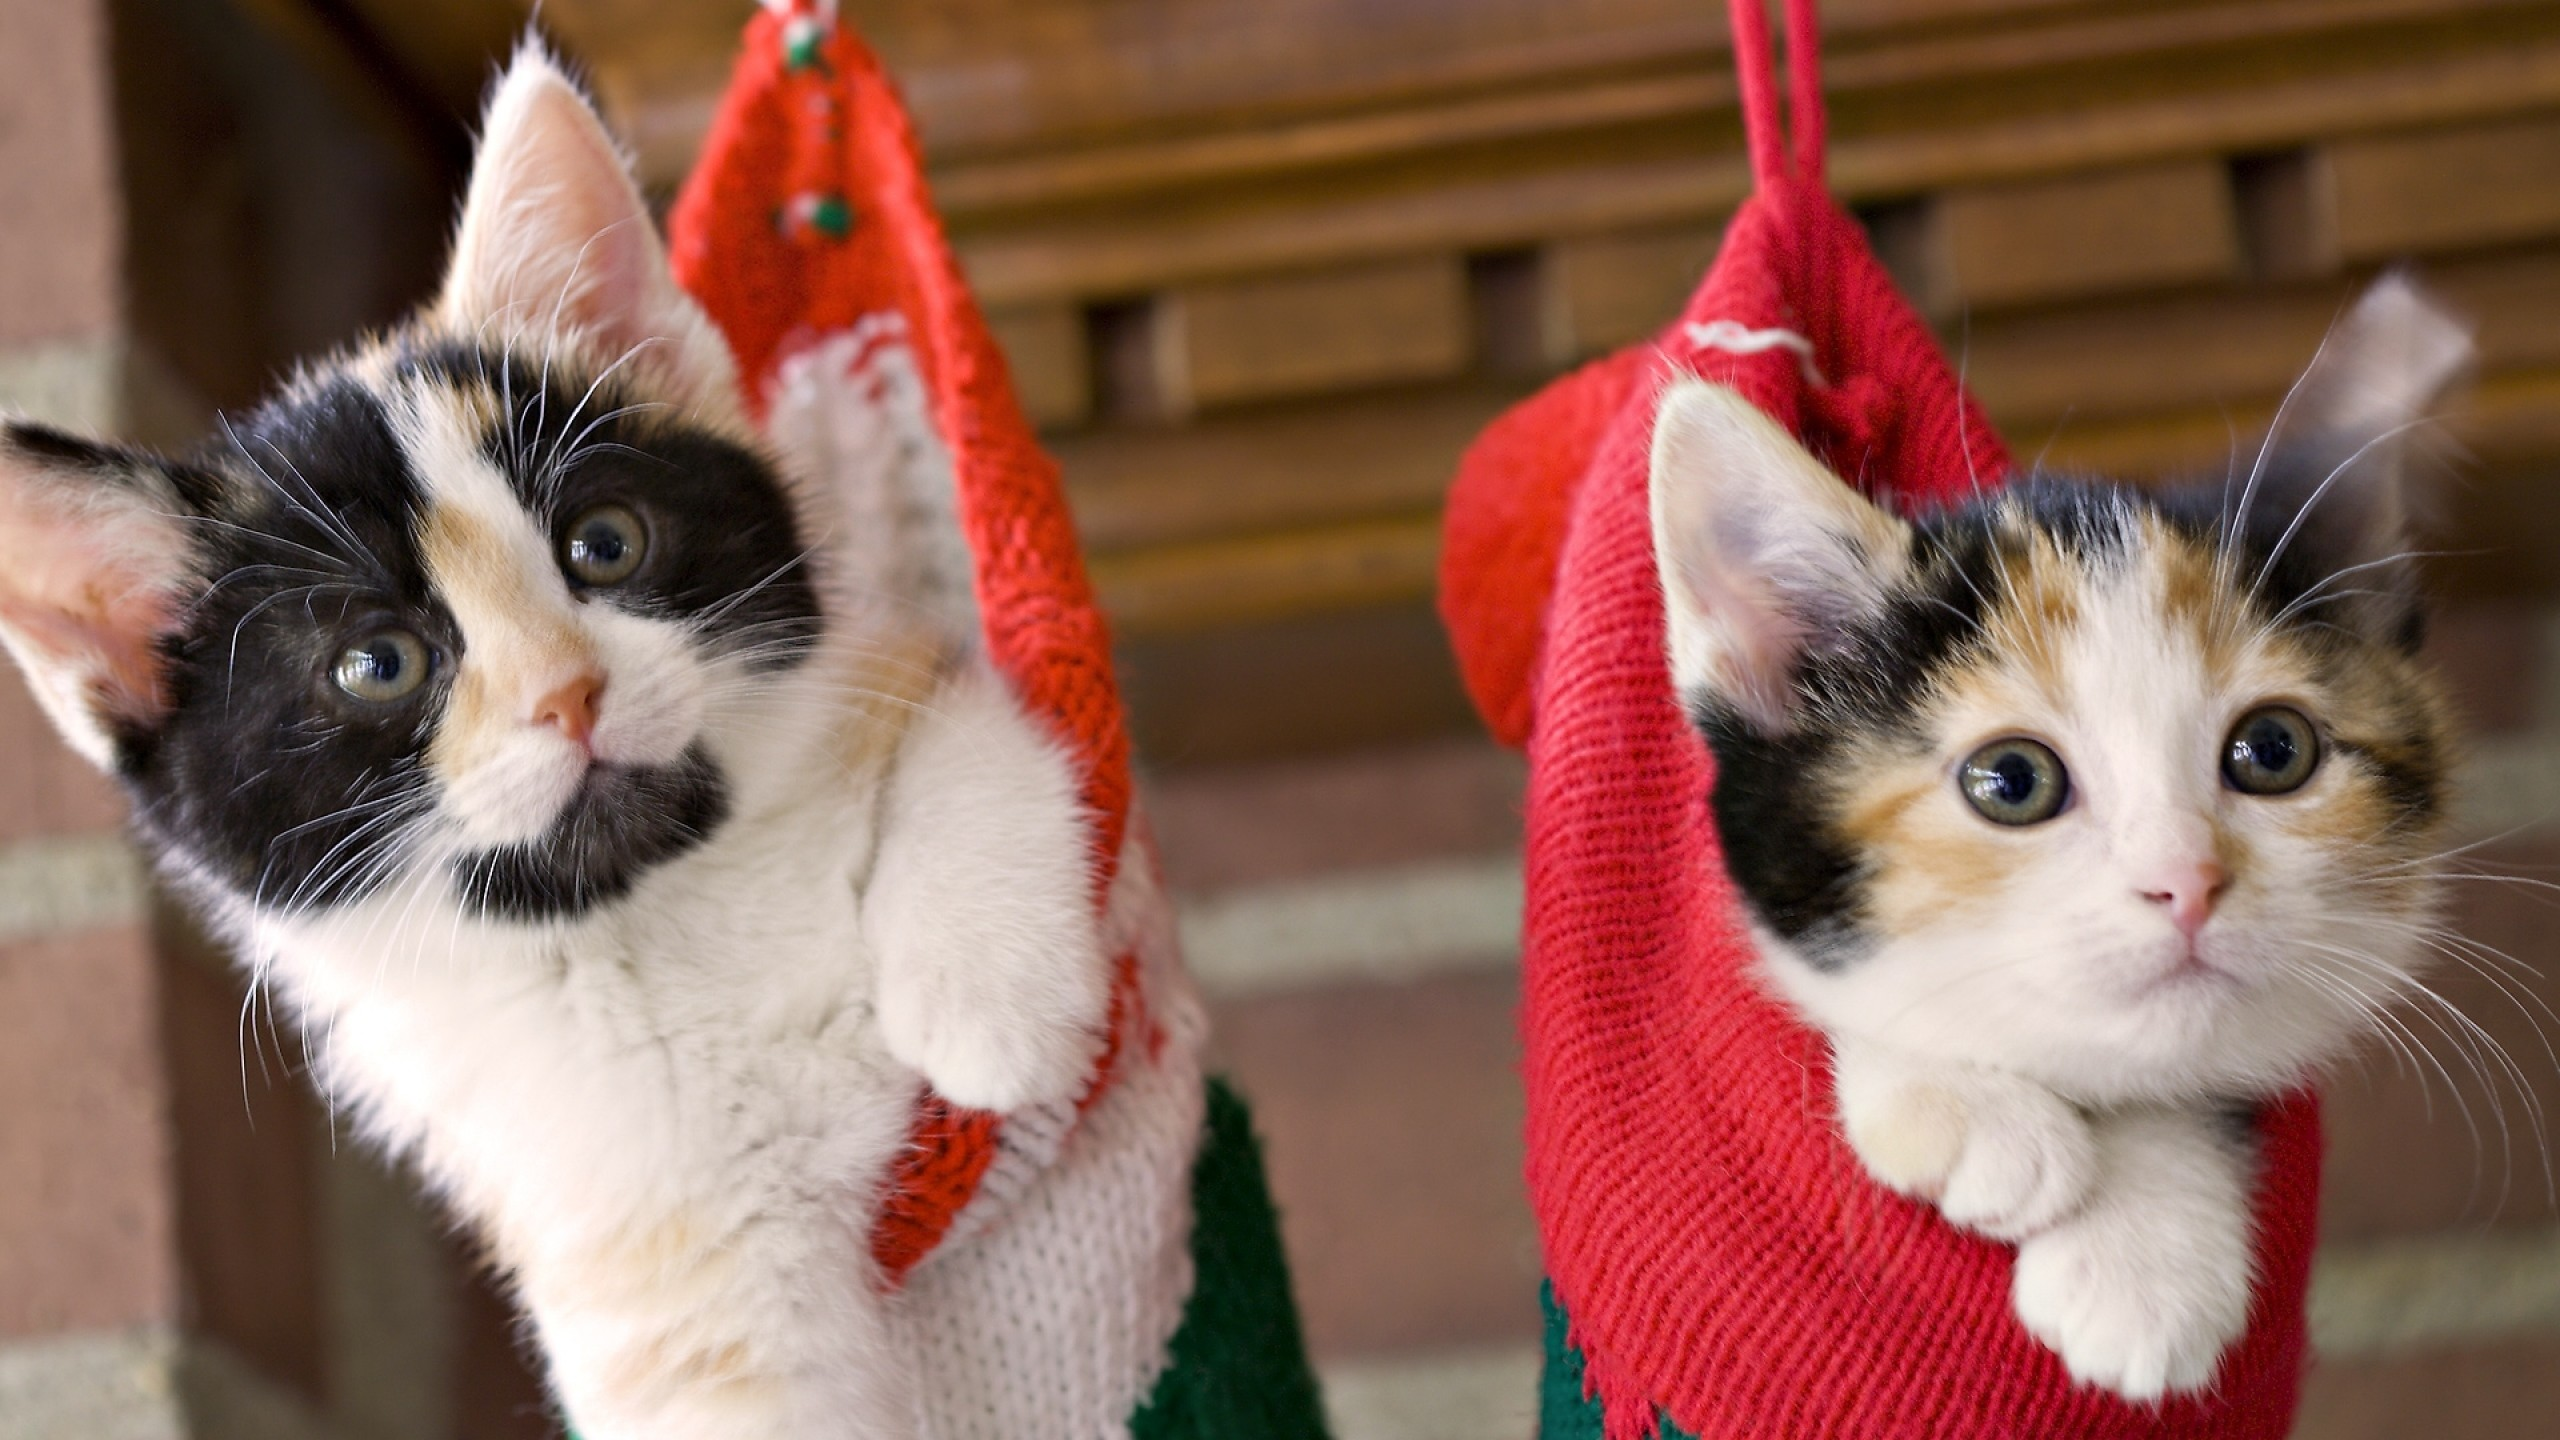 2560x1440  Wallpaper kittens, hang, socks, holiday, christmas, fluffy, couple